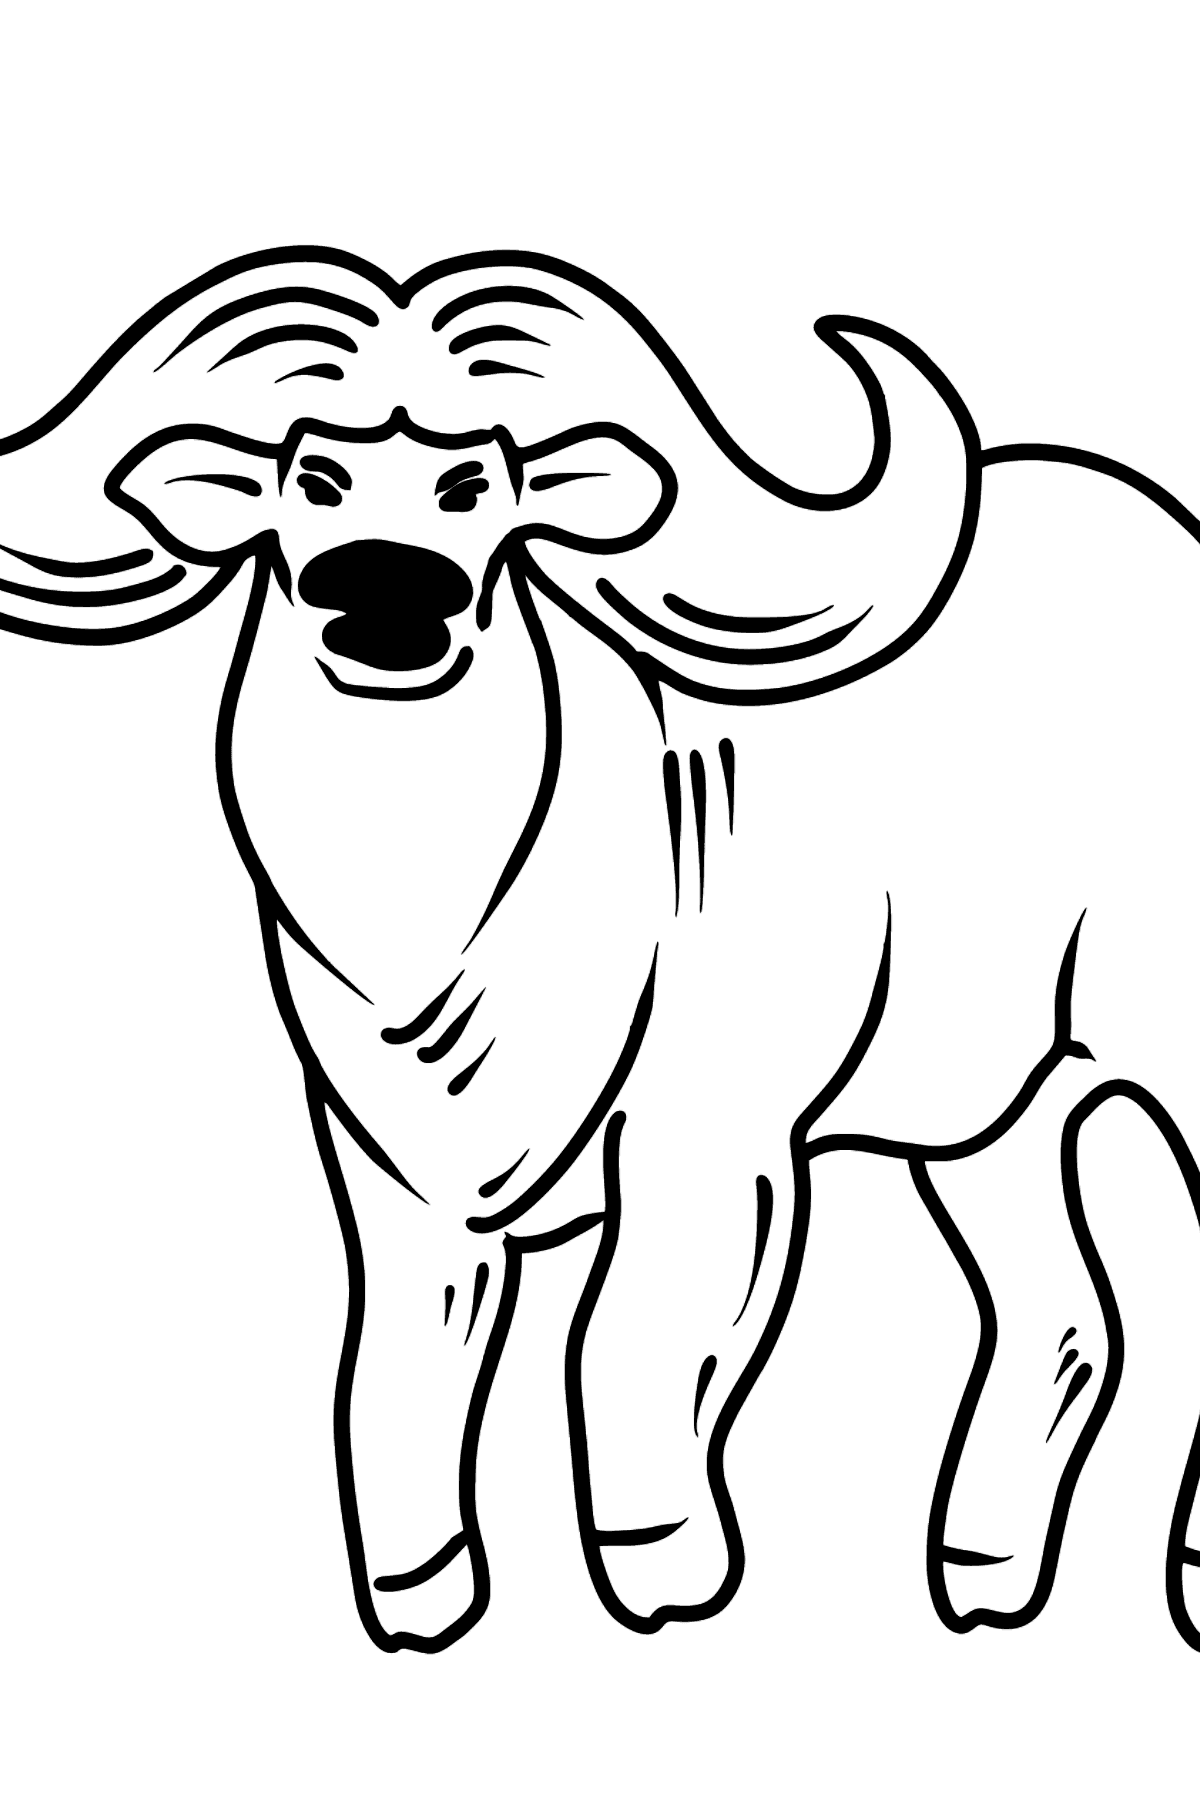 Buffalo coloring page - Coloring Pages for Kids